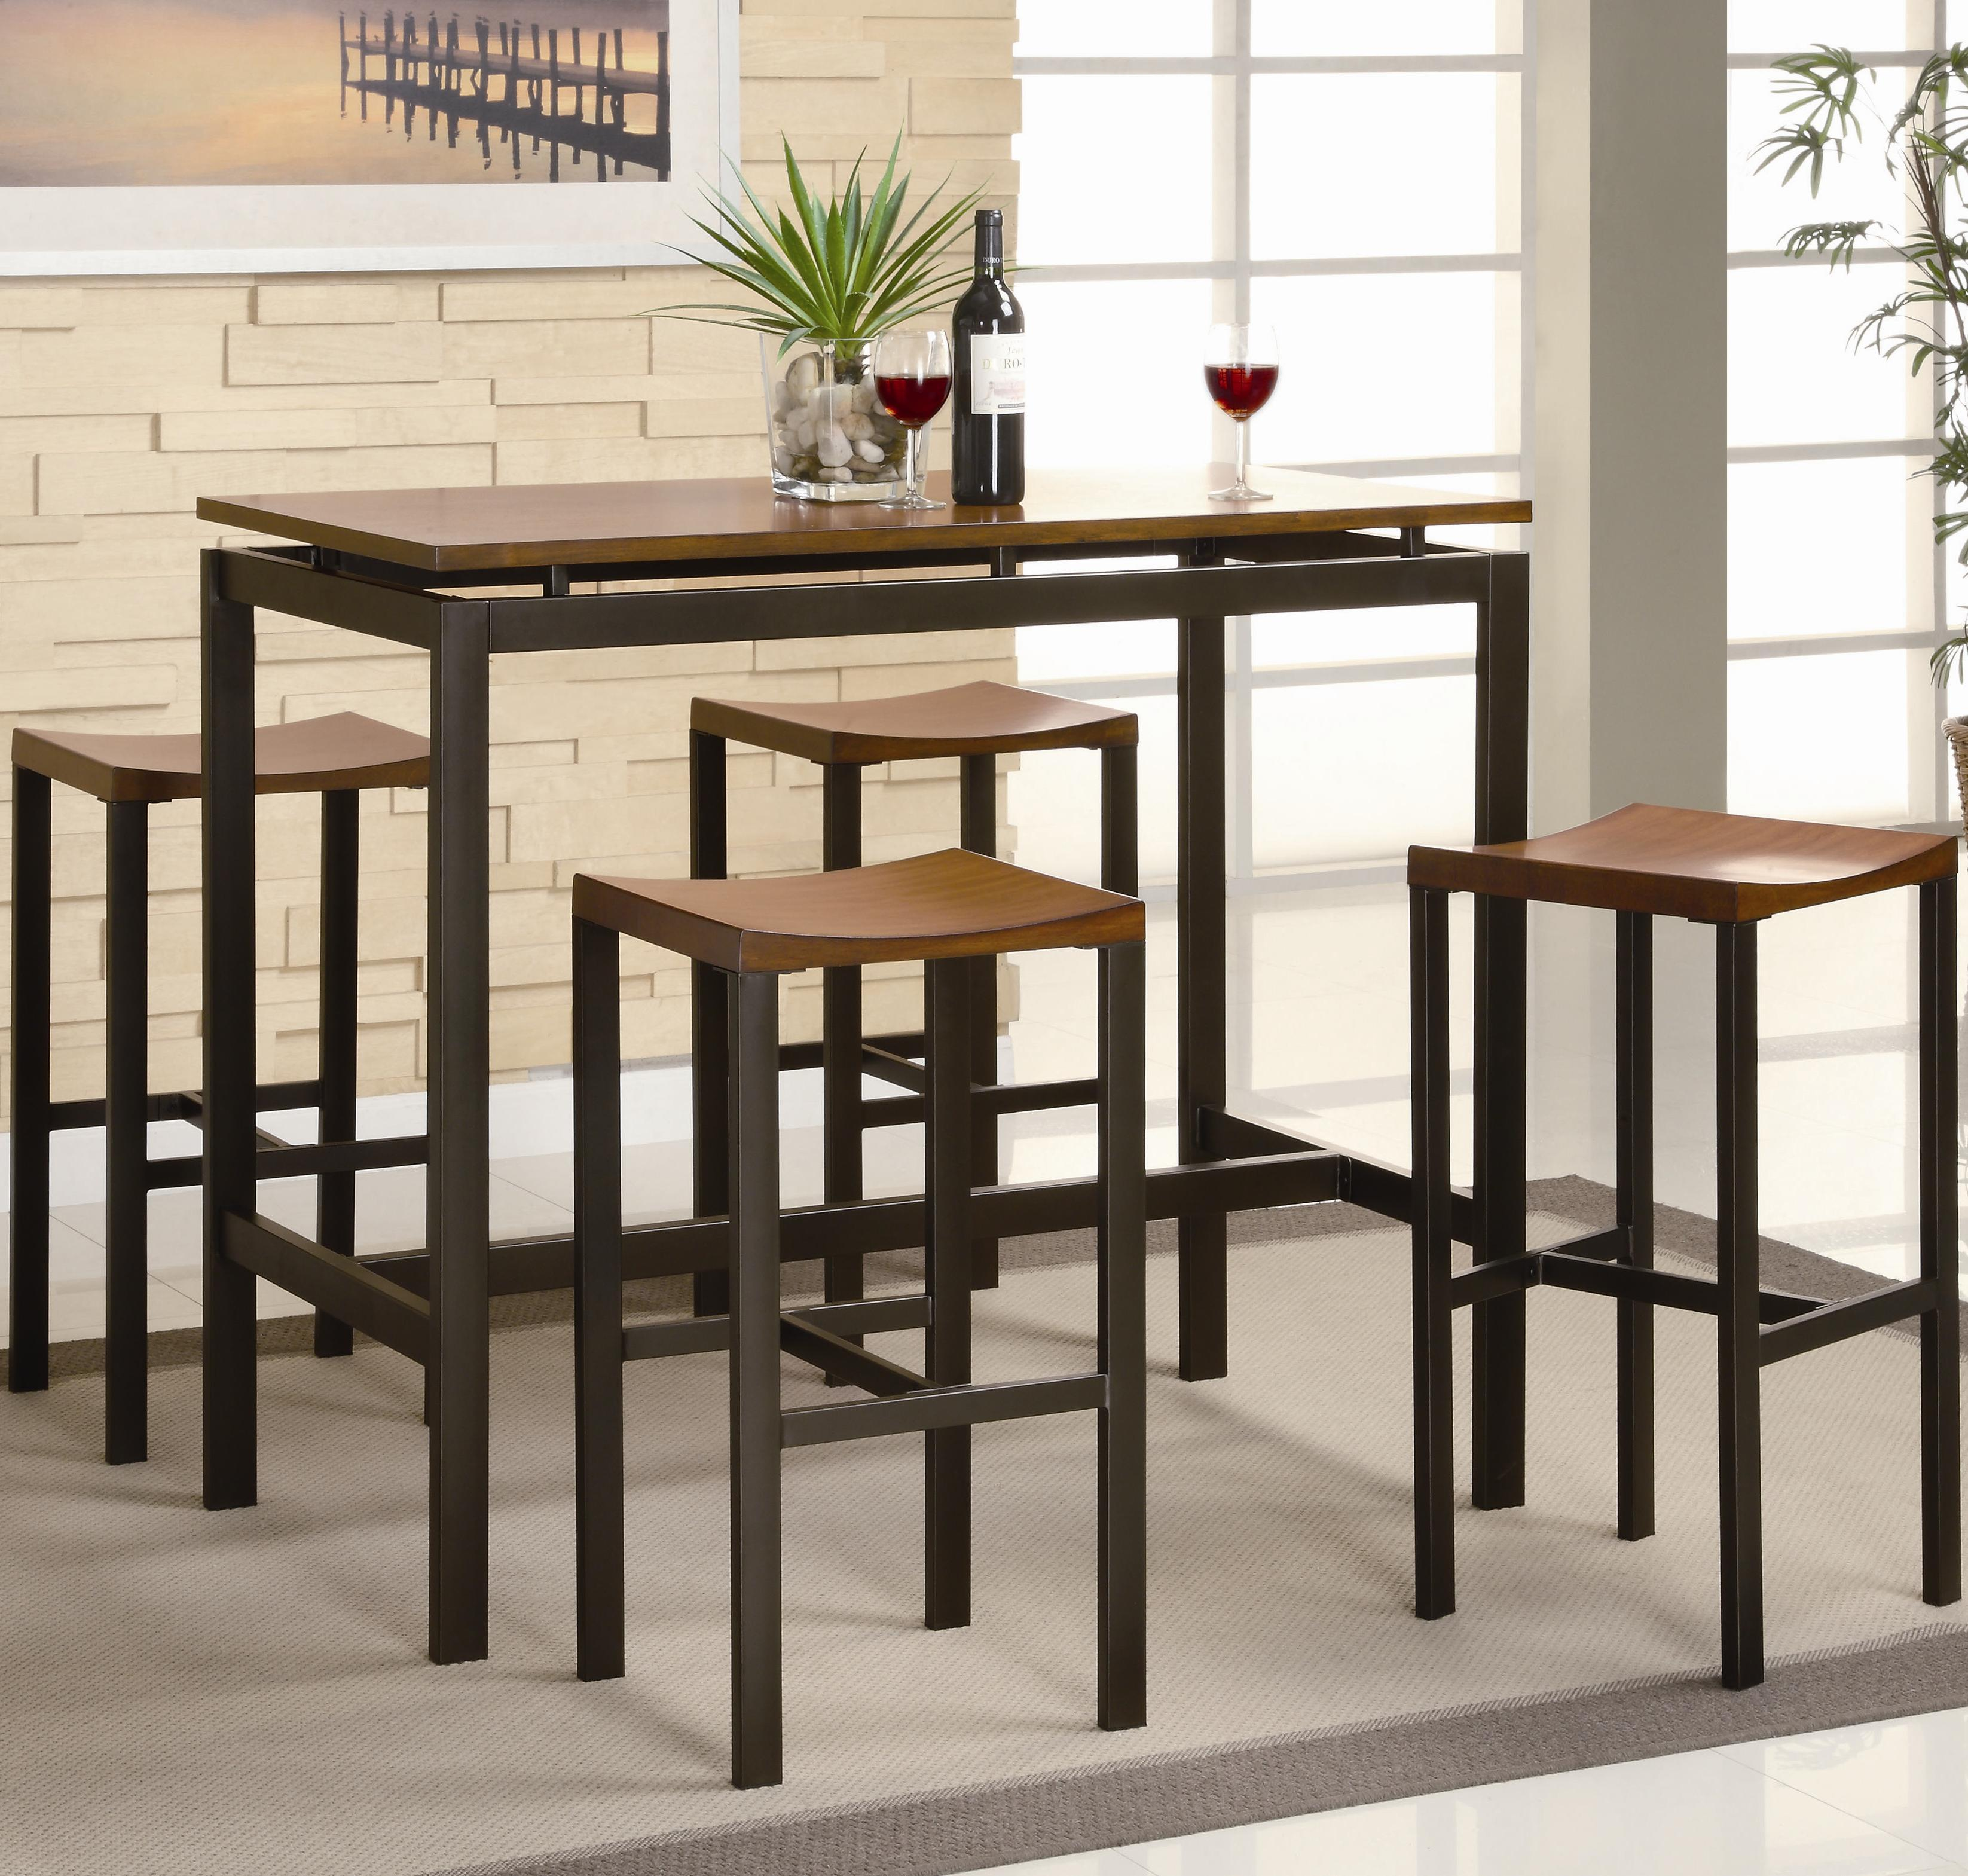 tall kitchen tables and chairs adirondack blueprints coaster atlus 150097 5 piece counter height dining set